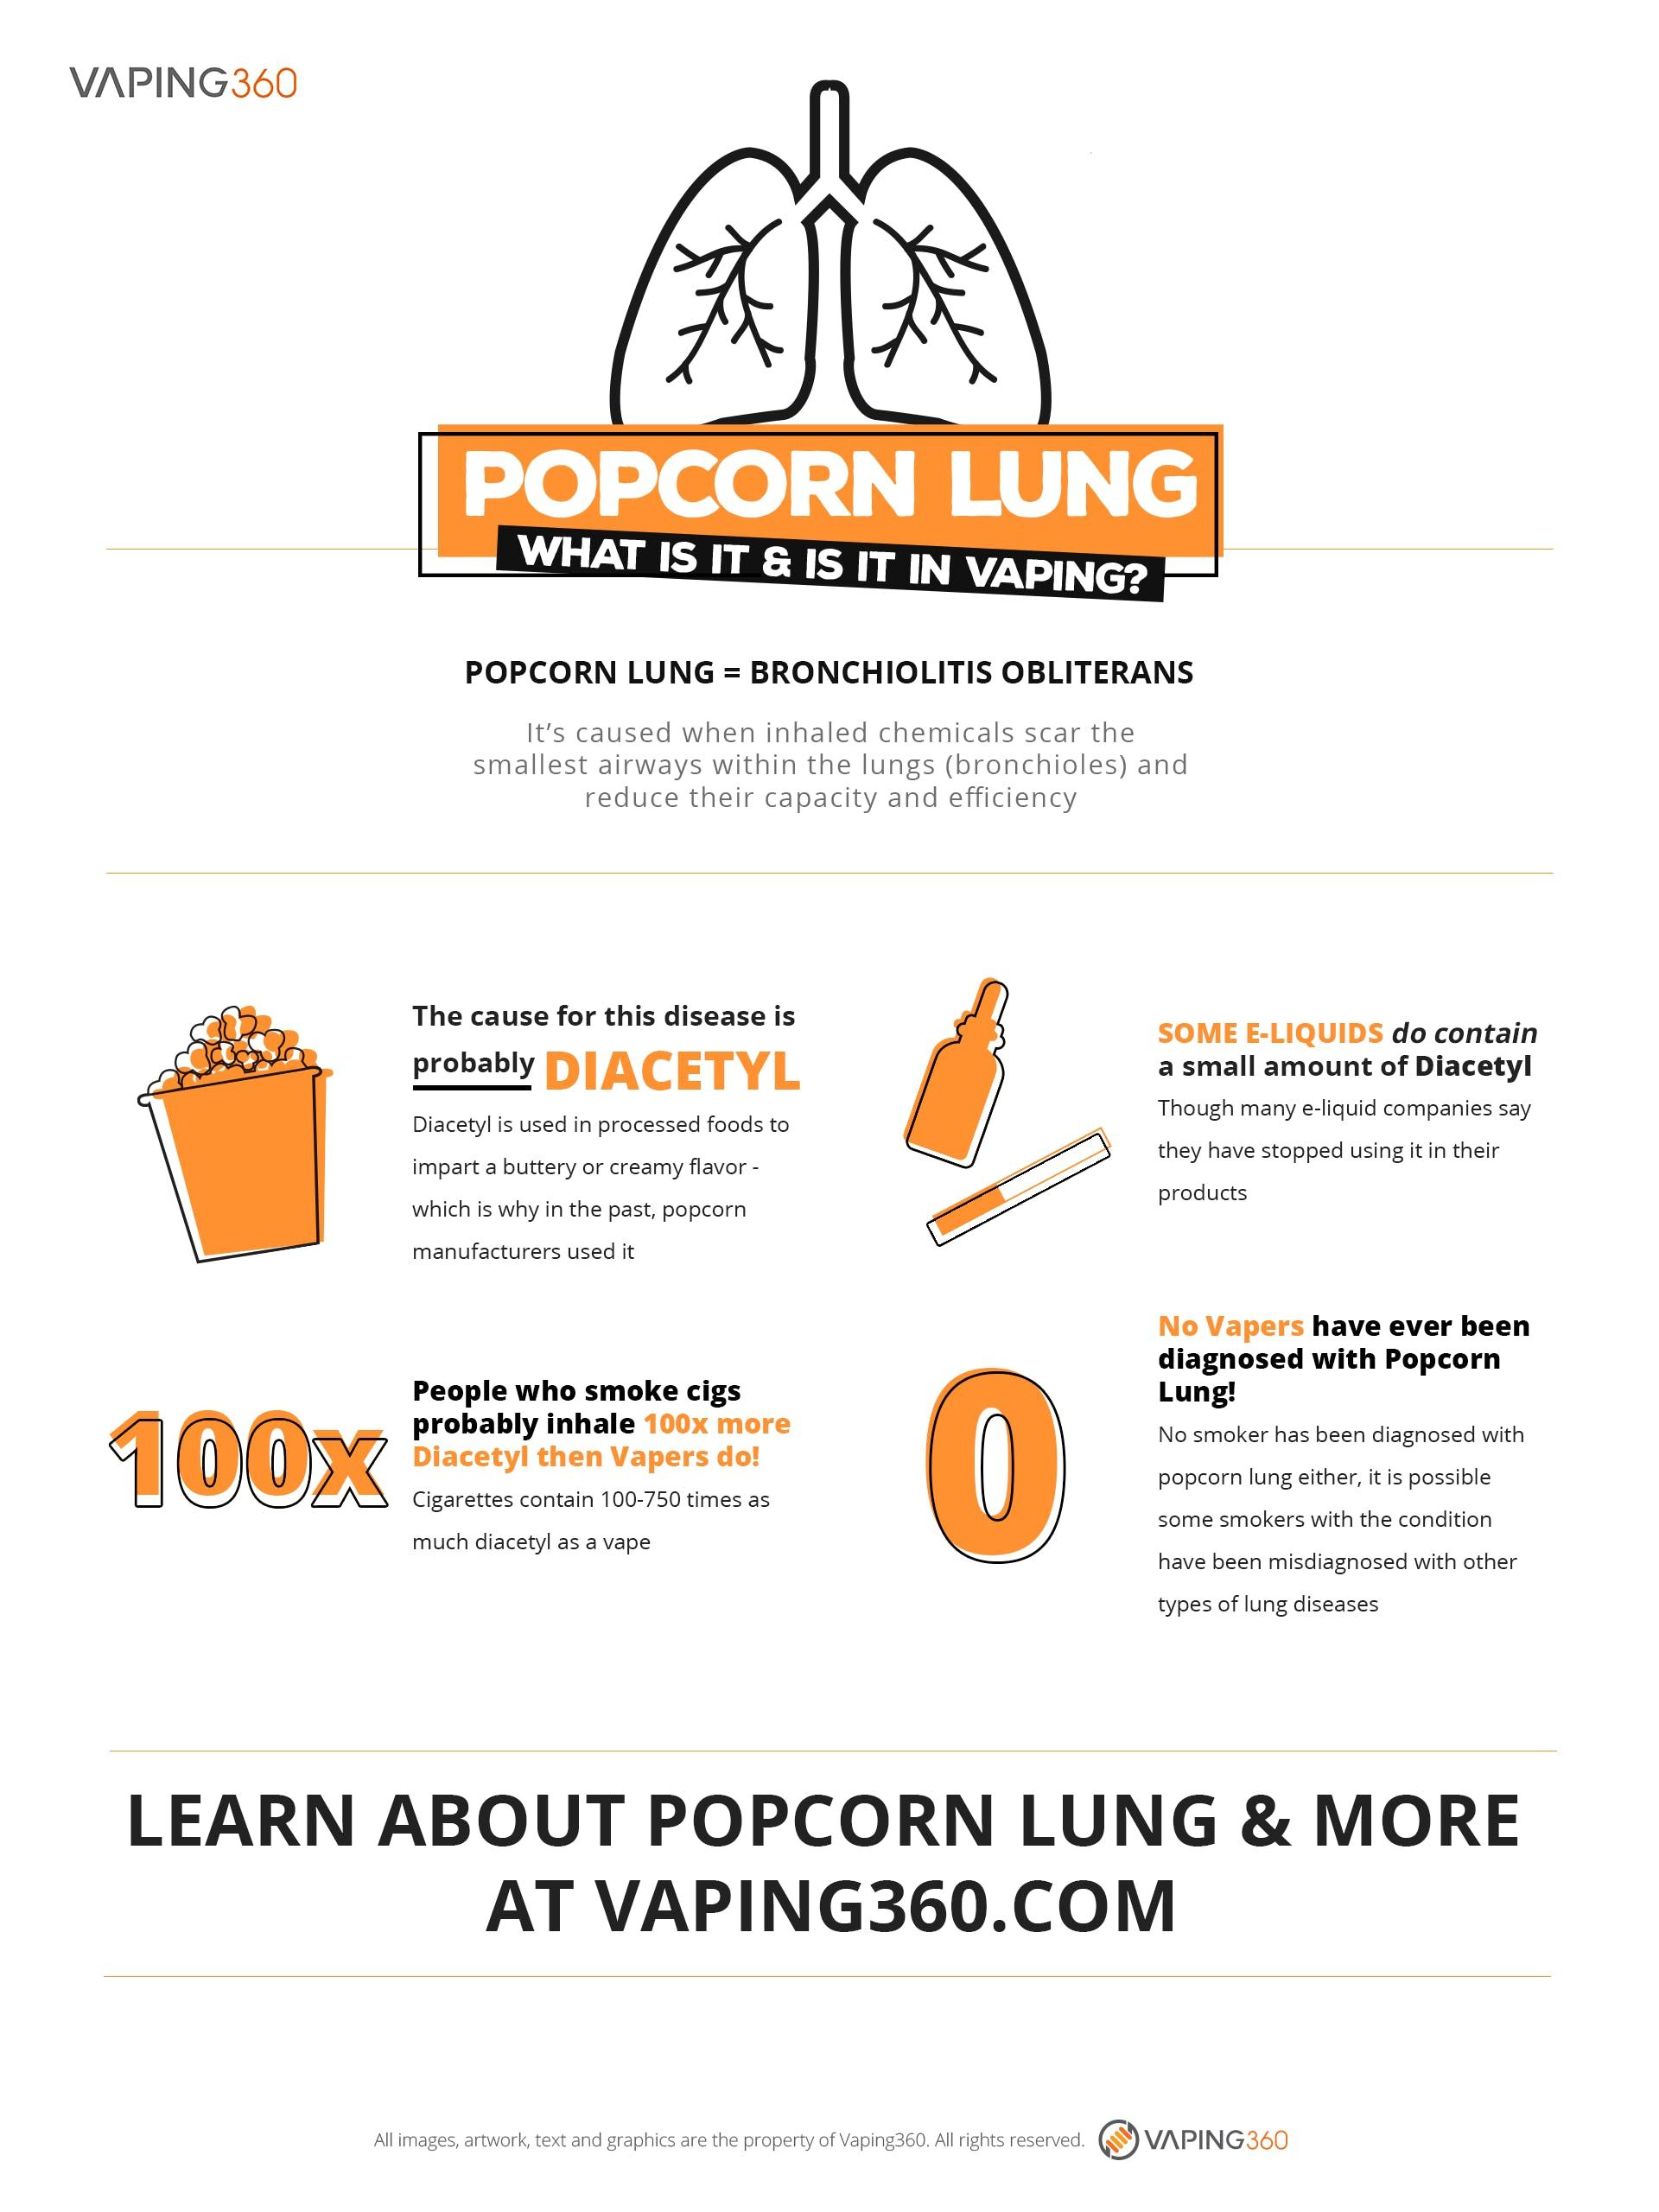 Does Diacetyl in Vaping Cause Popcorn Lung? - Vaping360